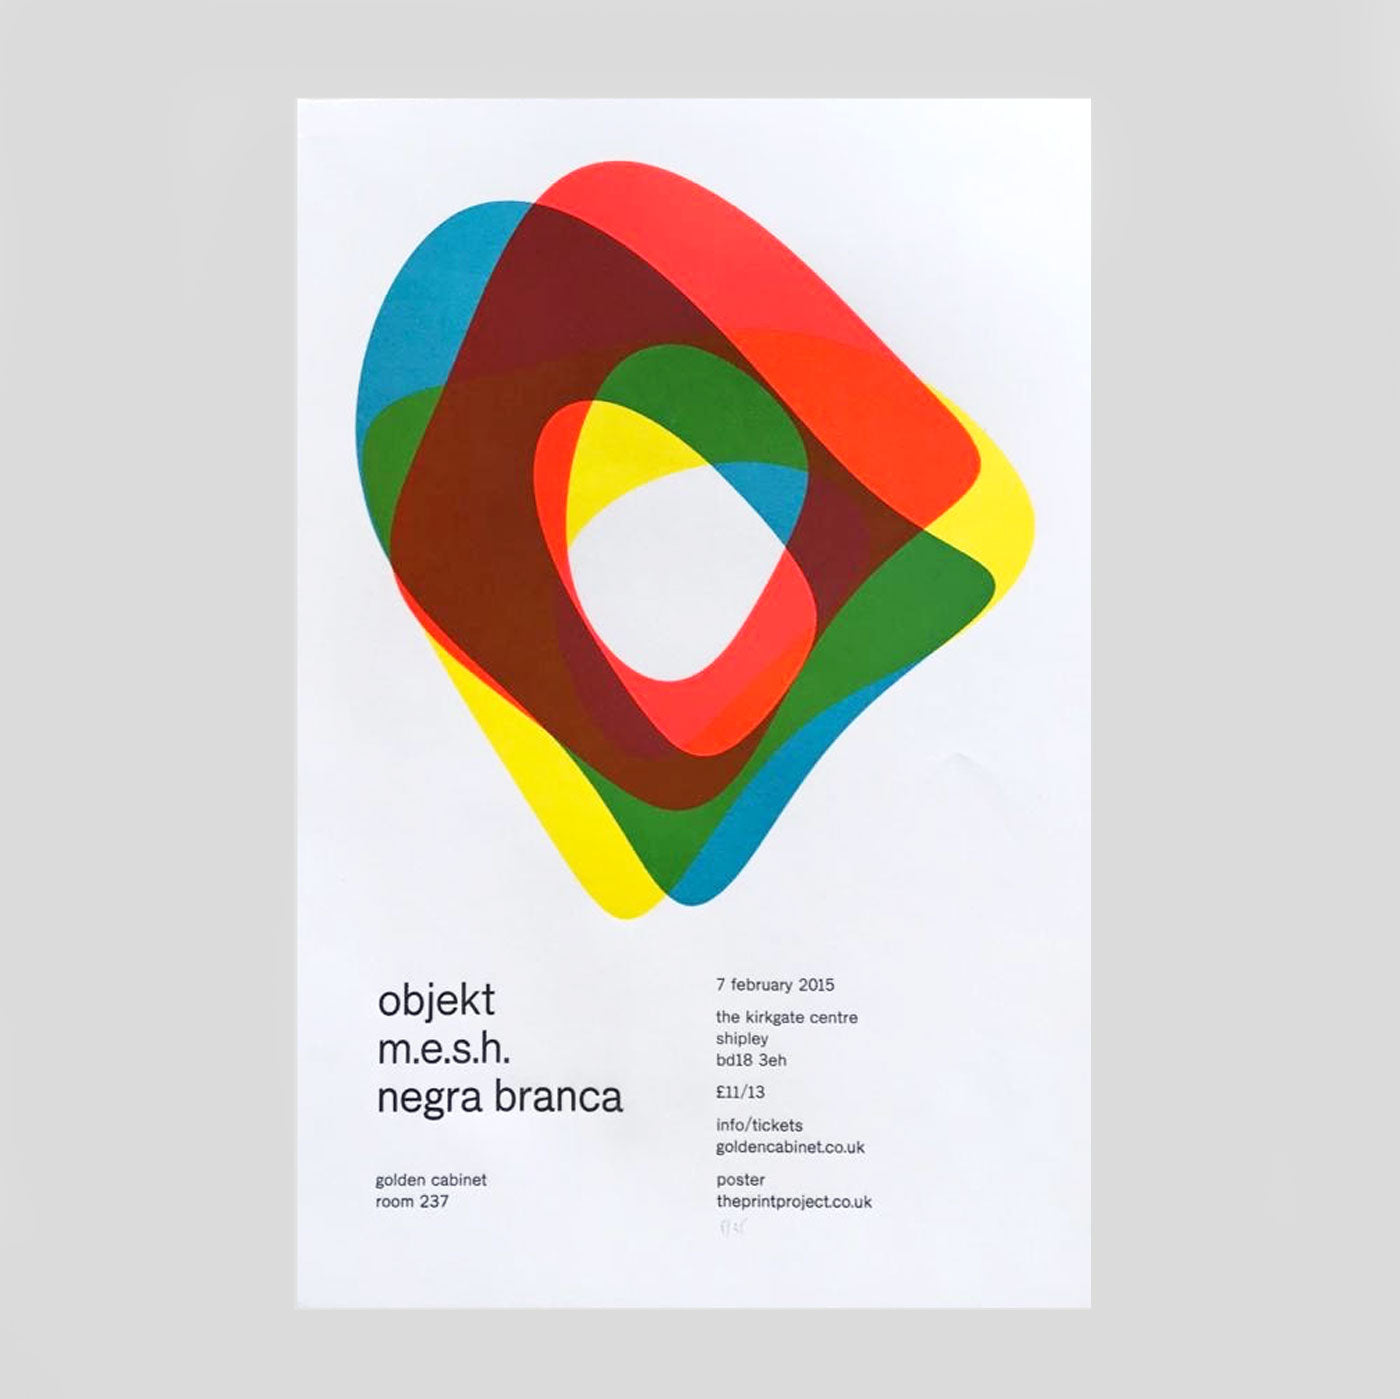 Objekt Letterpress Print by The Print Project for Golden Cabinet